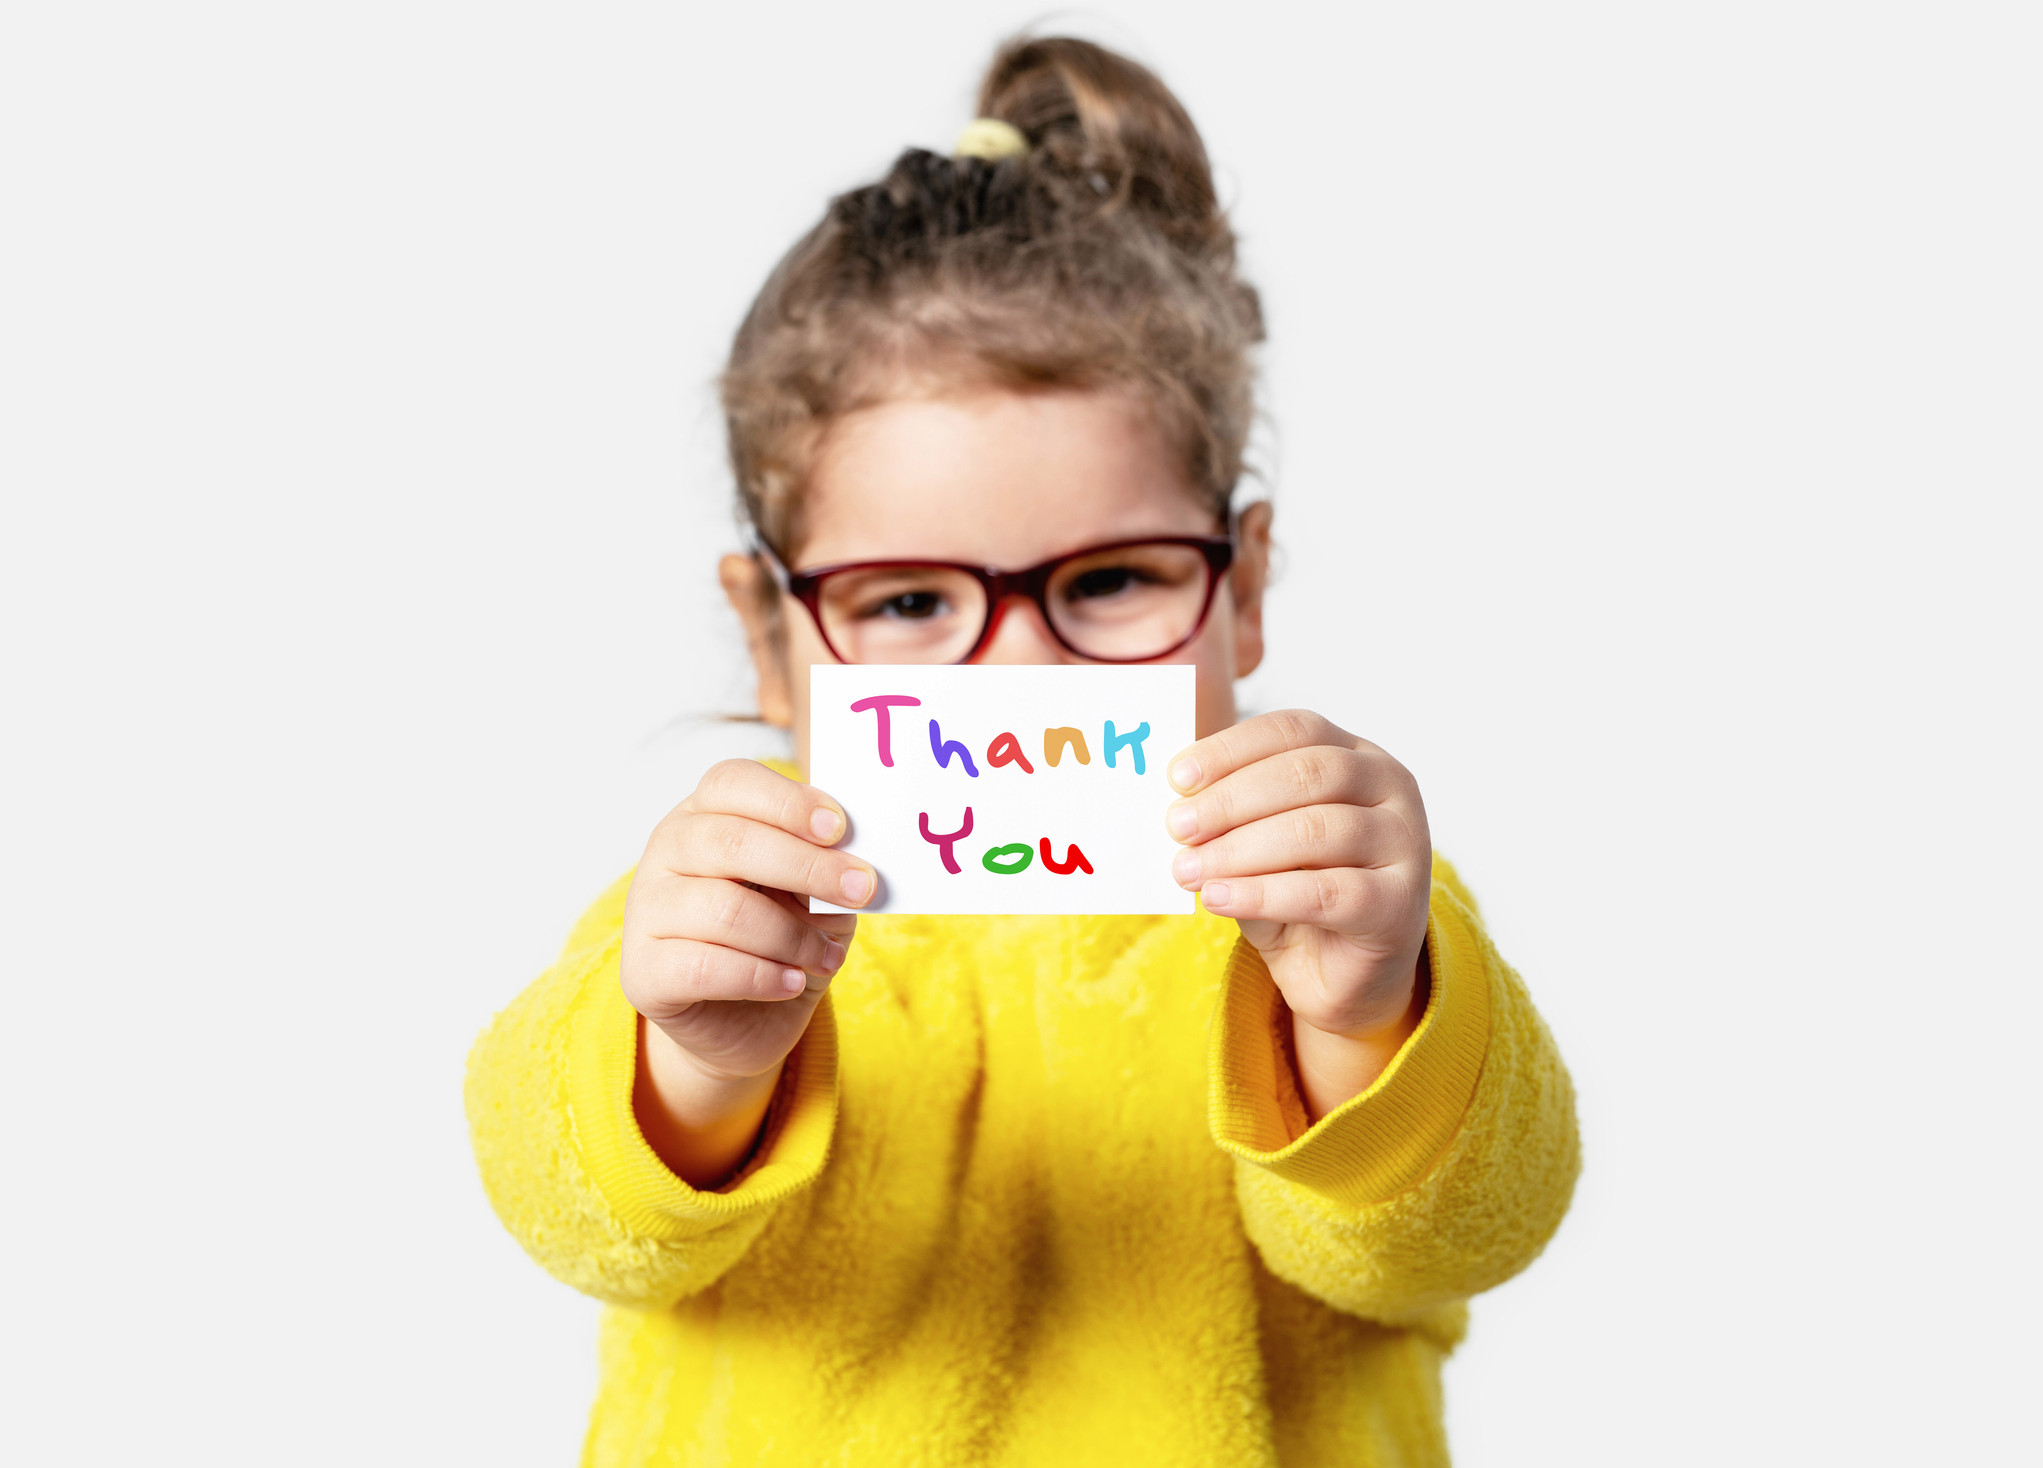 Sending a thank you card to your child's teacher but stuck for words? Here are 16 thoughtful messages you can use